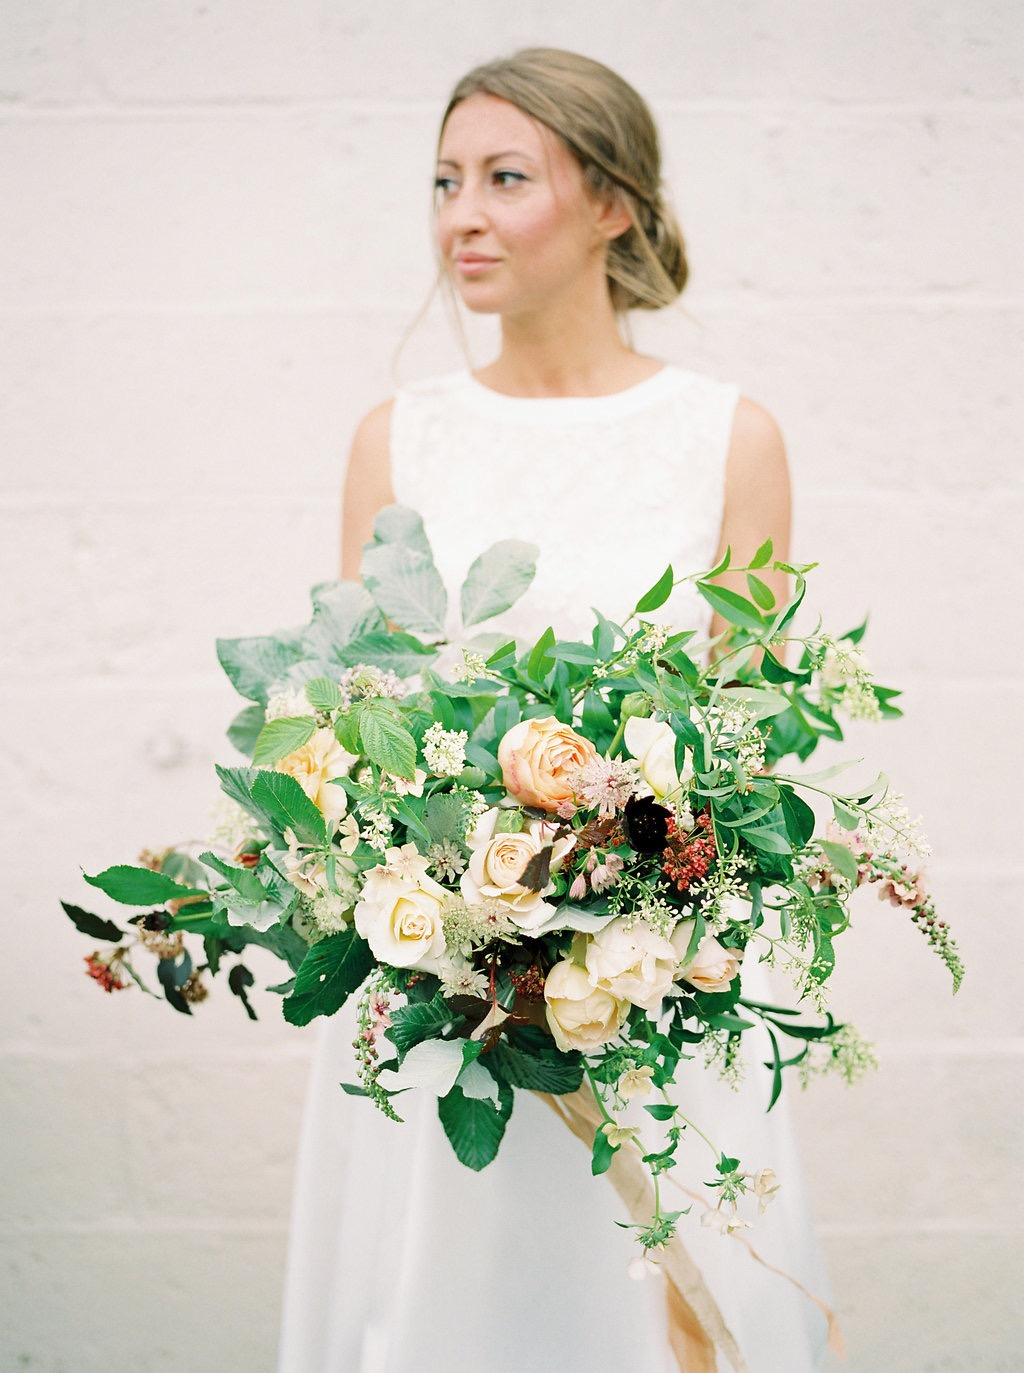 imogenxianabouquet-24.jpg June large asymetrical bouquet with silk ribbons.jpg